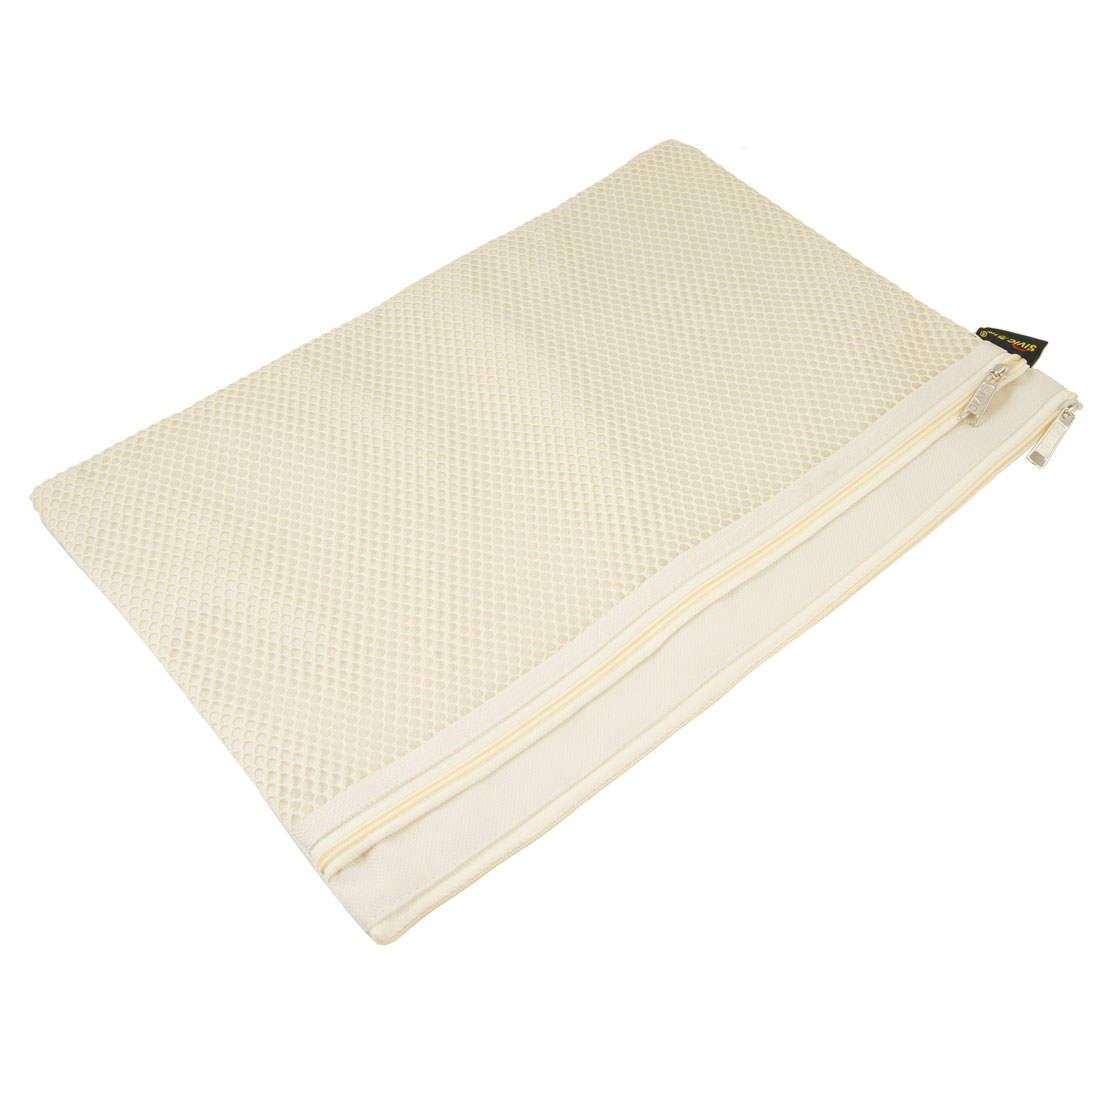 Beige Zipper Closure Nylon Netting Design Files Bags for A4 Paper